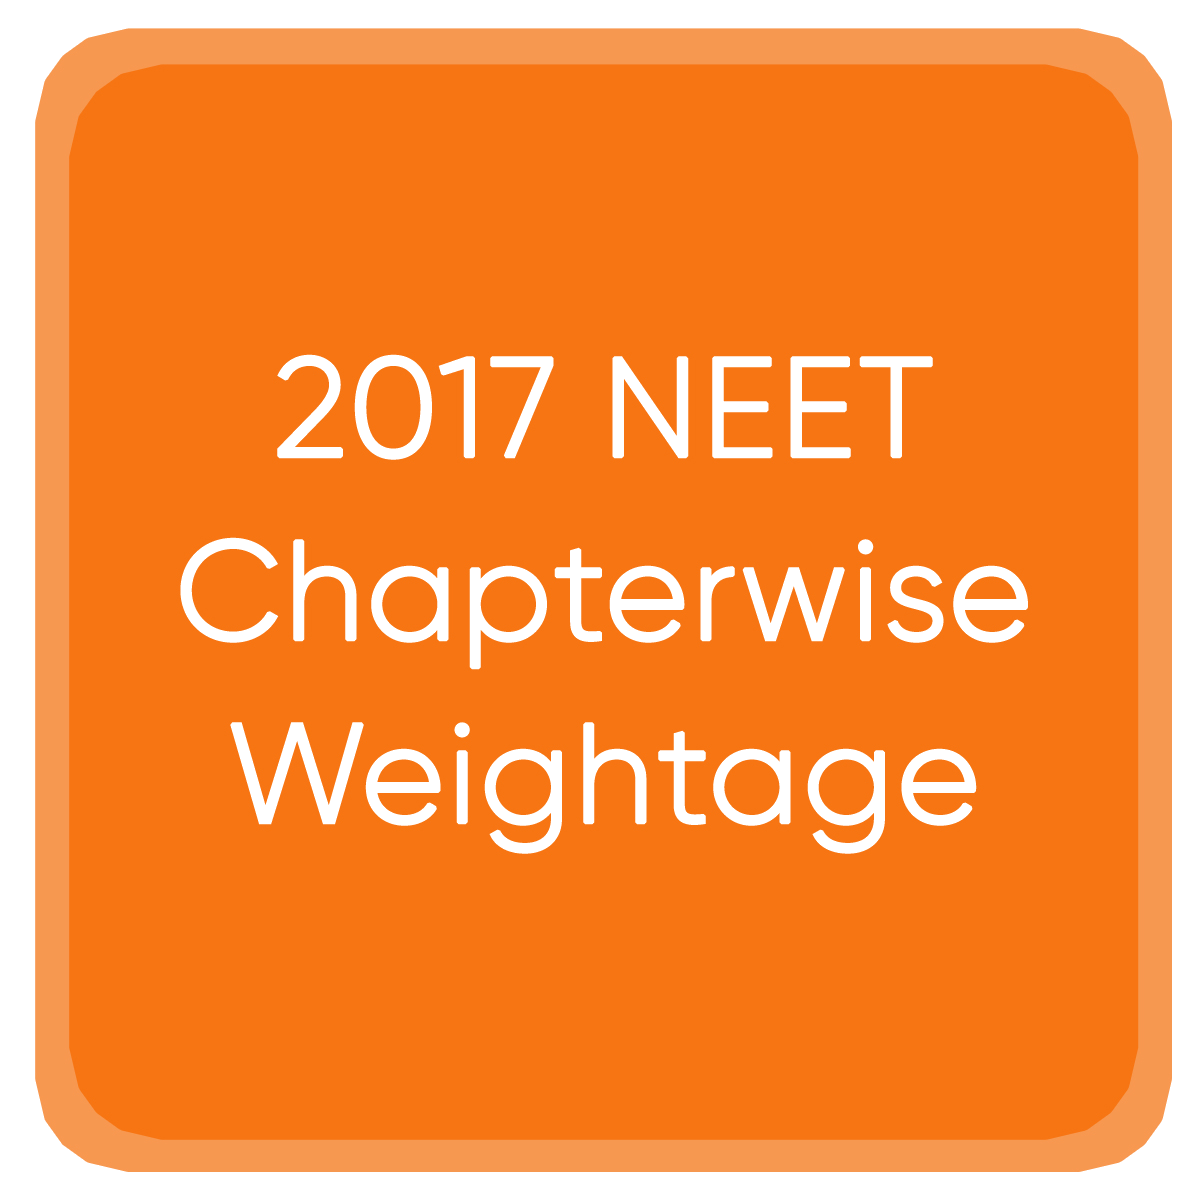 2017 NEET Chapterwise Weightage